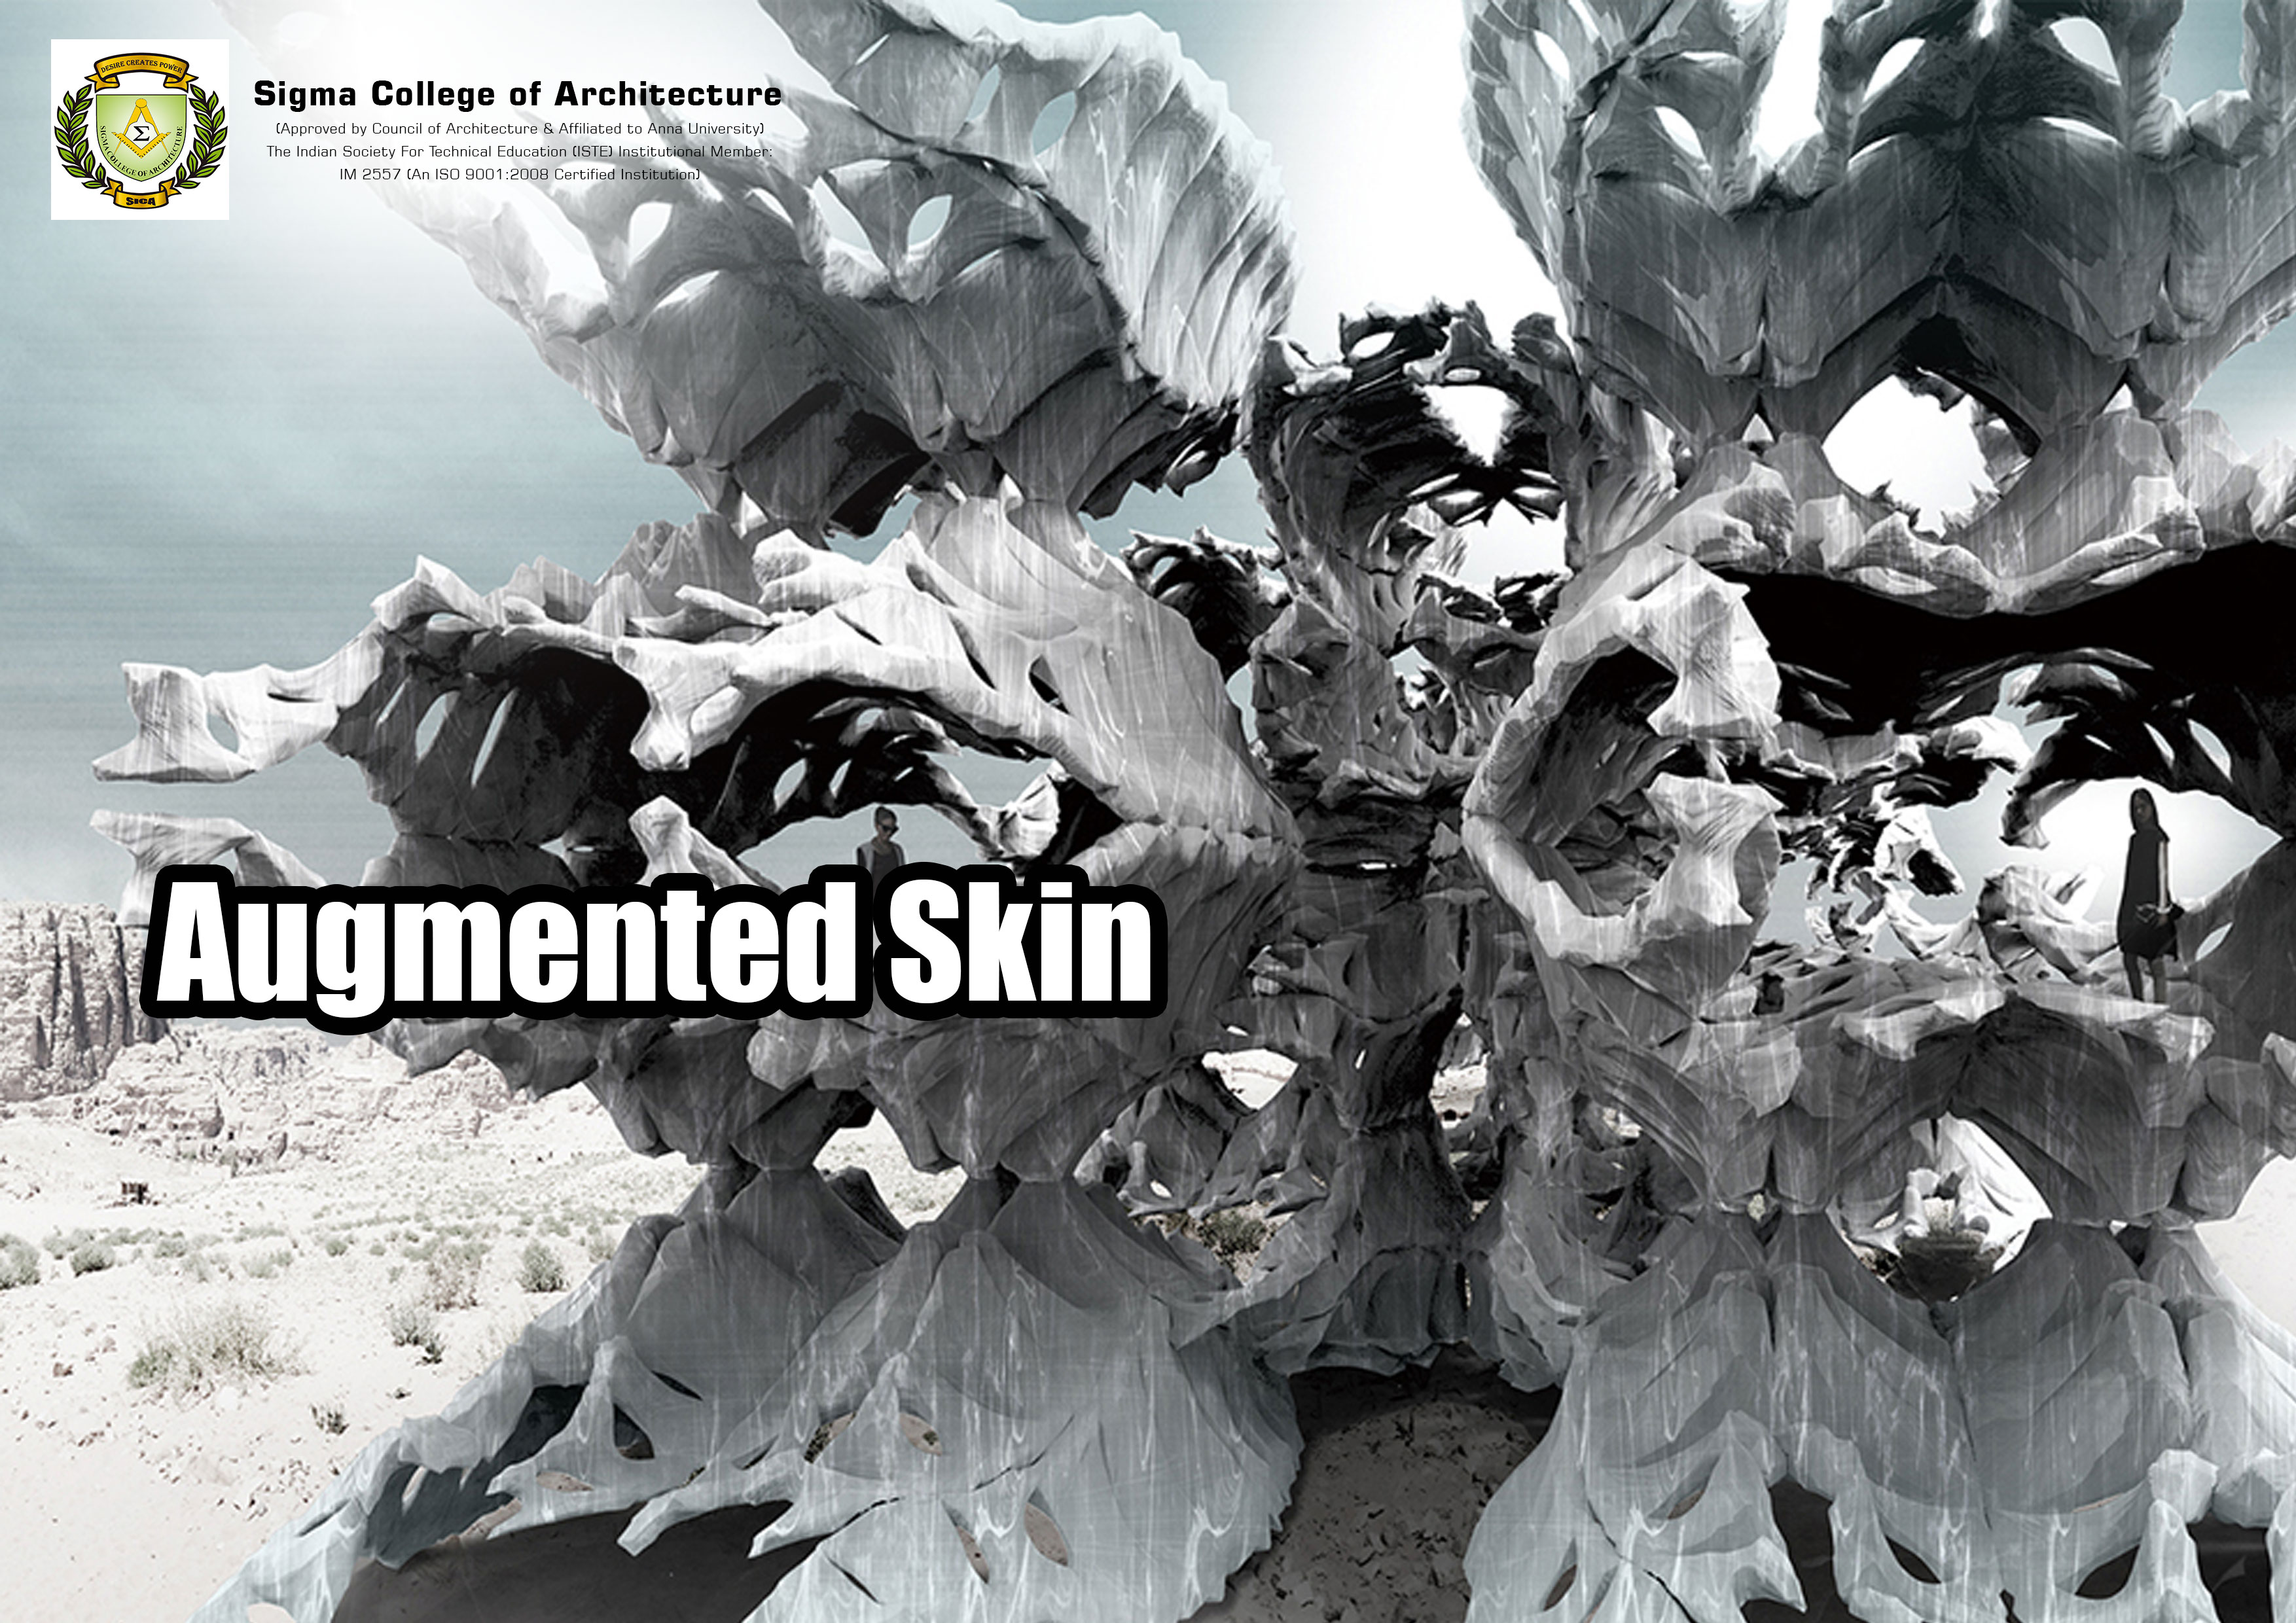 Augmented Skin